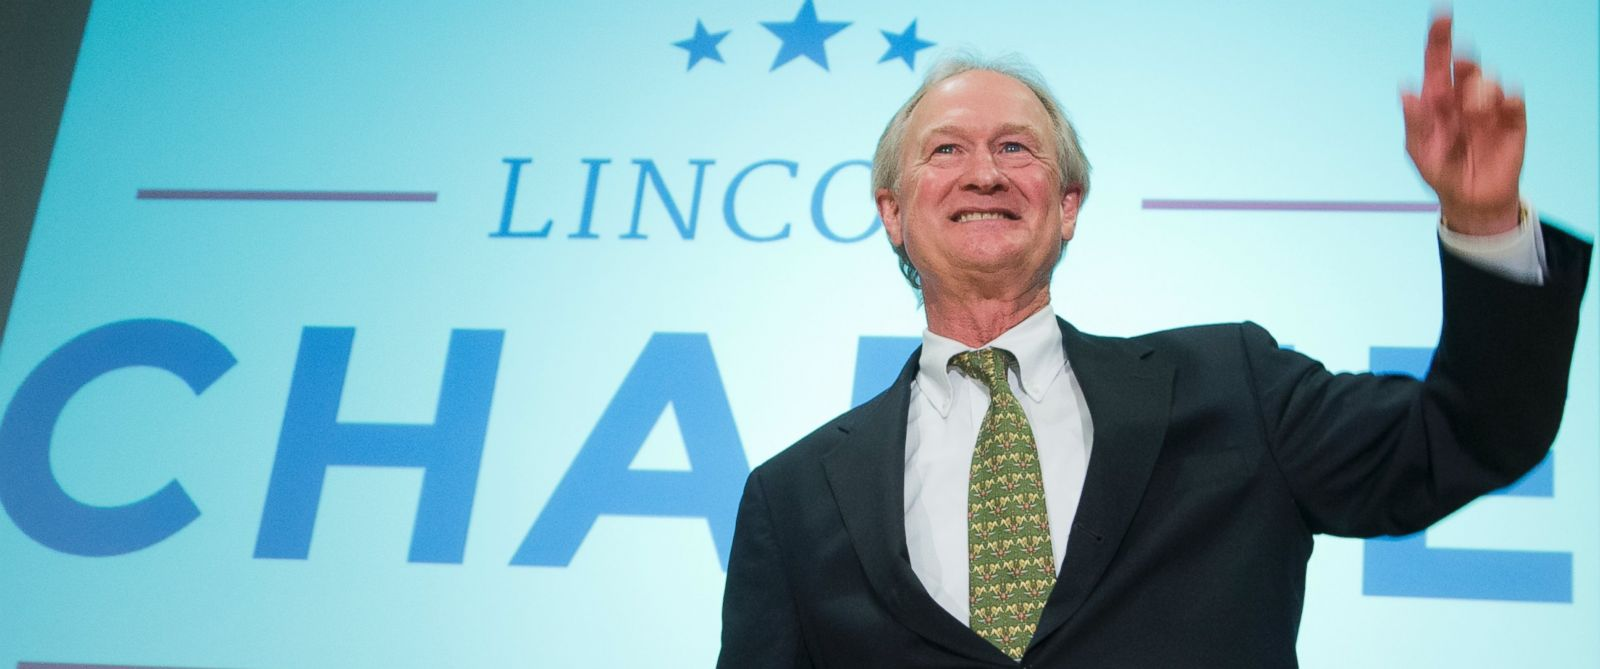 Photo former rhode island gov lincoln chafee waves after announcing